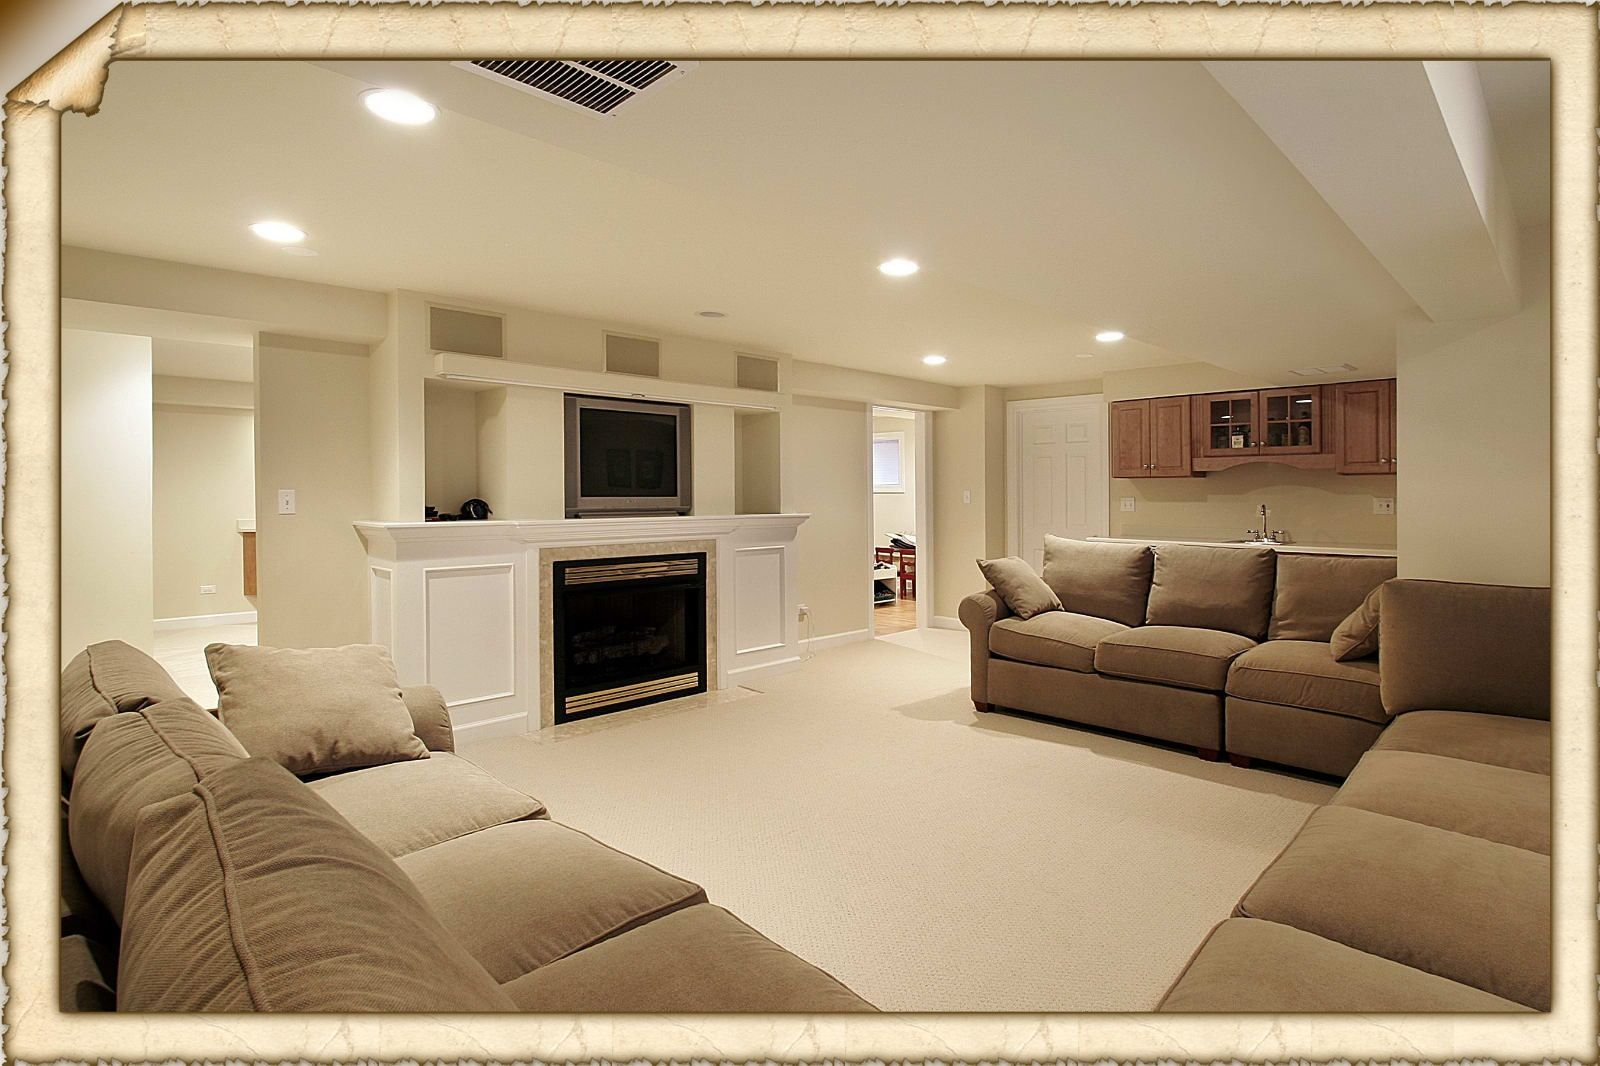 denver interior design - 1000+ images about Basement on Pinterest Basement ideas ...